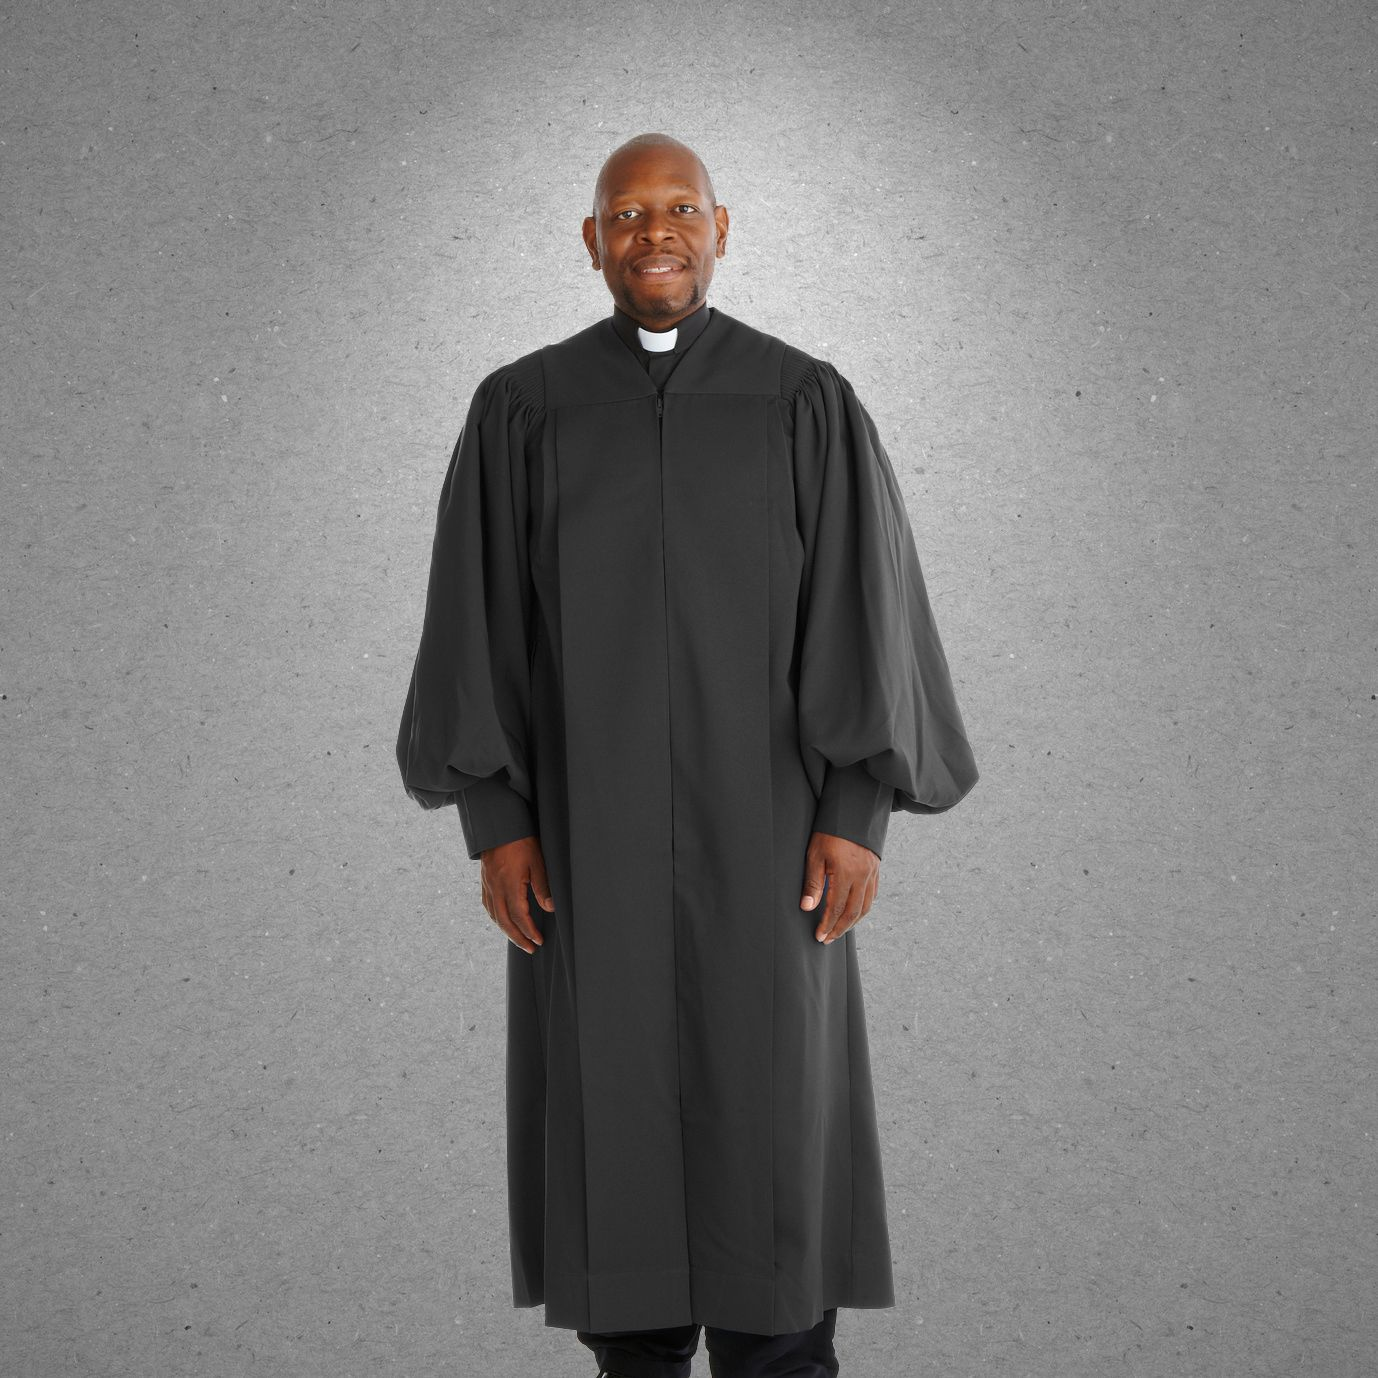 901 P. Men's & Women's Clergy Robe - Solid Black